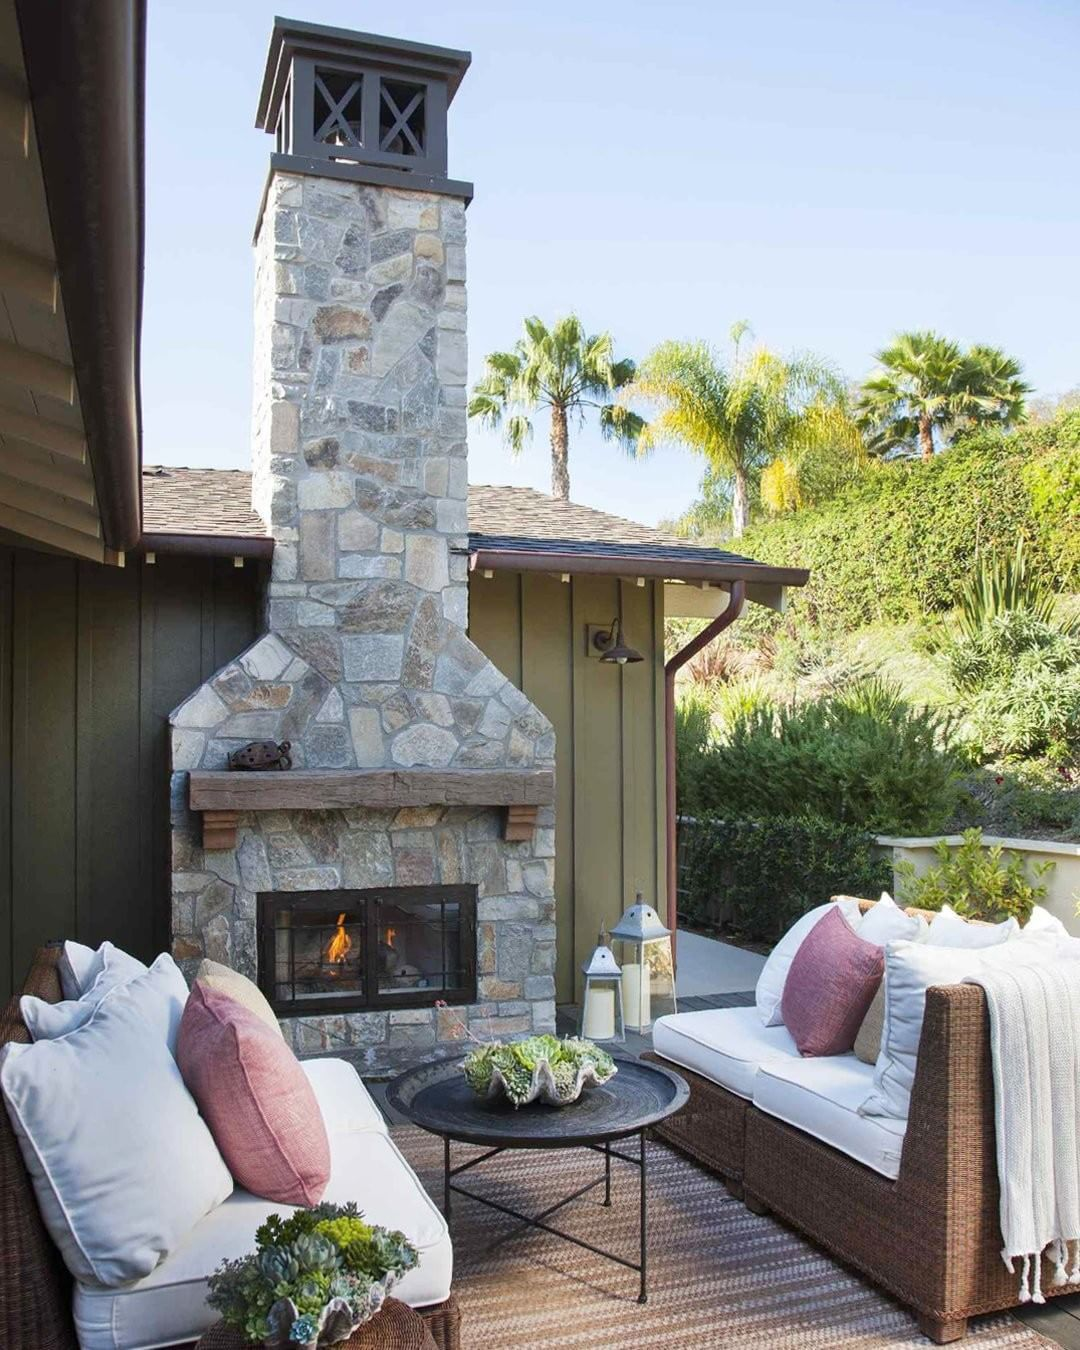 An outdoor fireplace is the ideal spot to gather around on